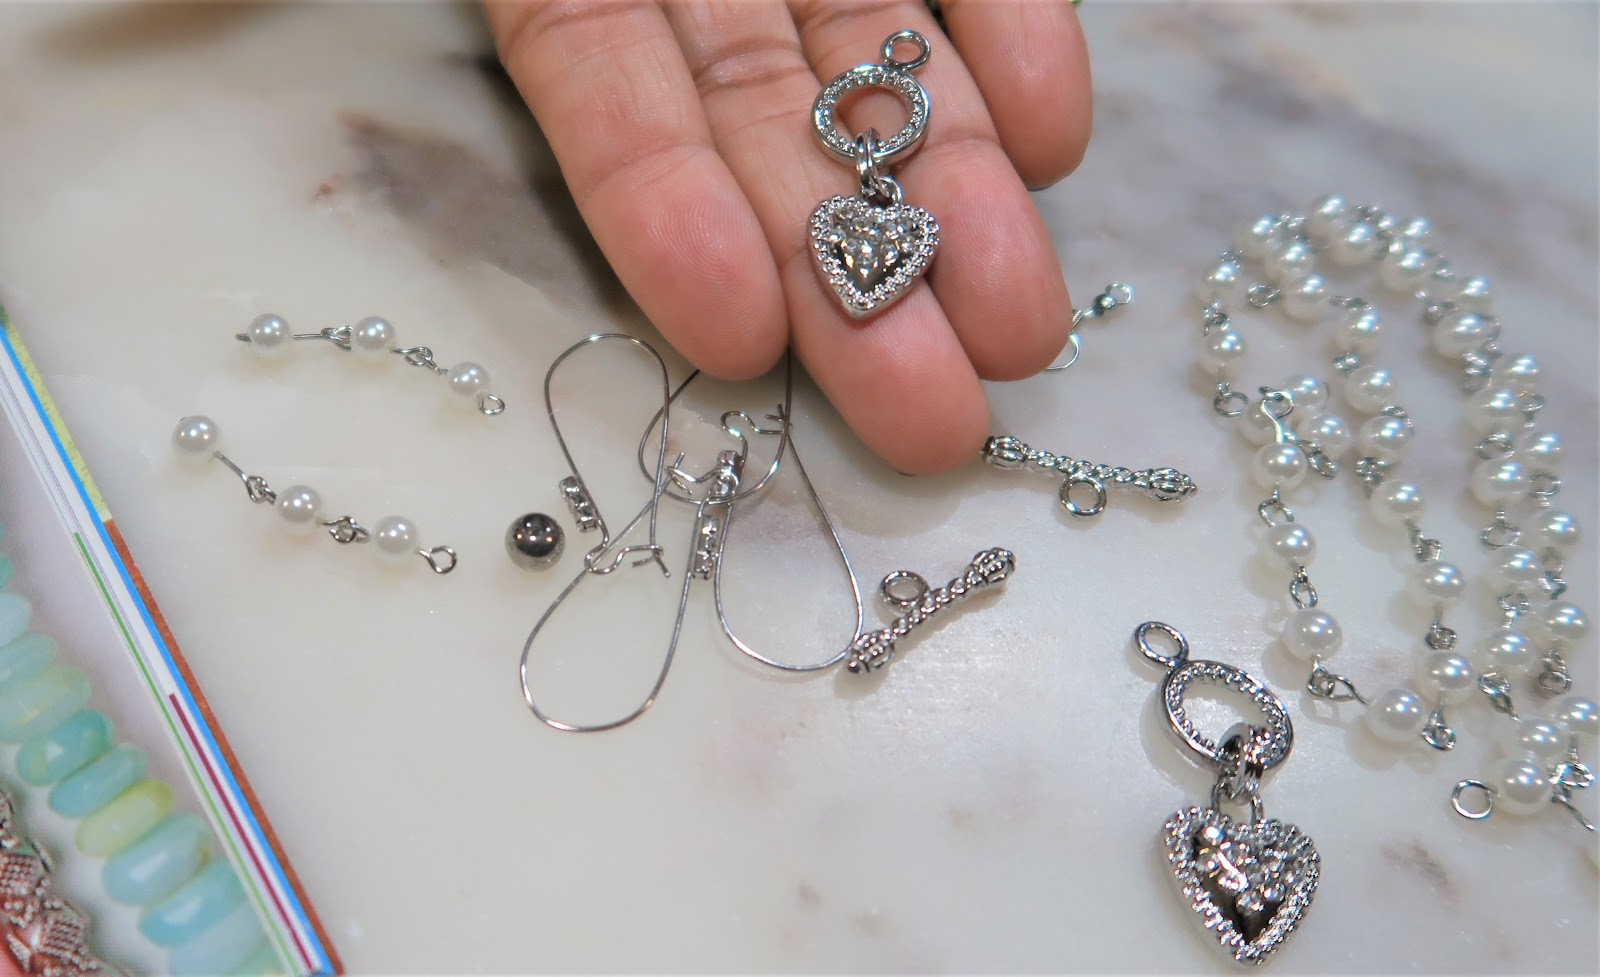 Image: Tangie Bell showing another way to make earring by using toggles that are meant to make necklaces.